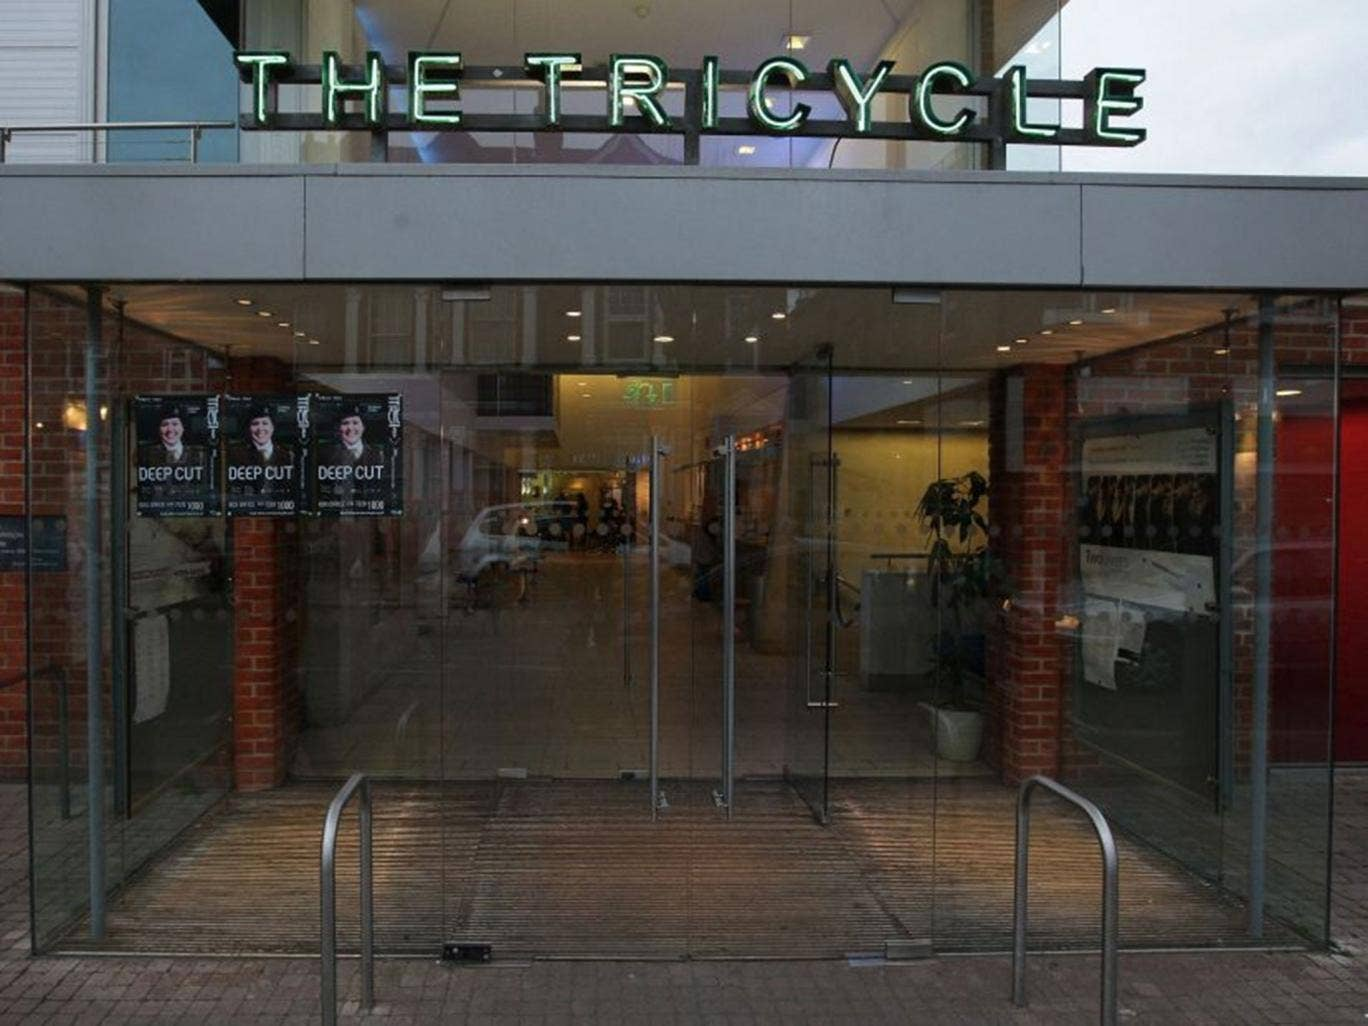 The Tricycle Theatre, Kilburn which has refused to host the UK Jewish Film Festival while it is sponsored by the Israeli Embassy amid the ongoing crisis in Gaza.